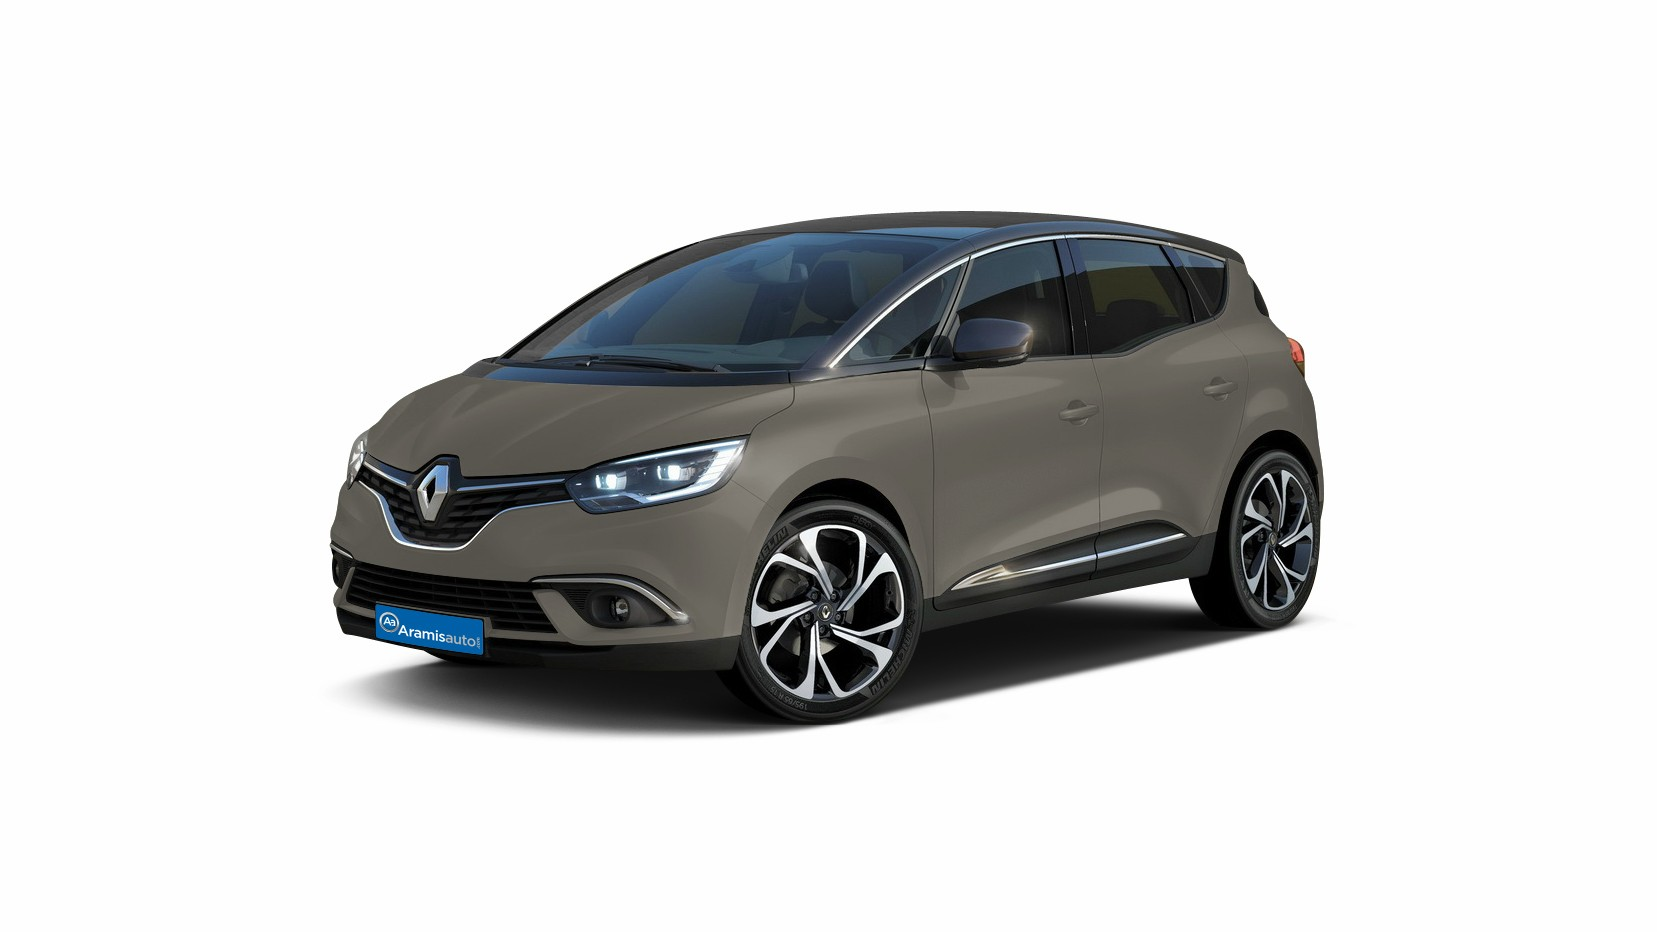 RENAULT SCéNIC 4<br />Intens